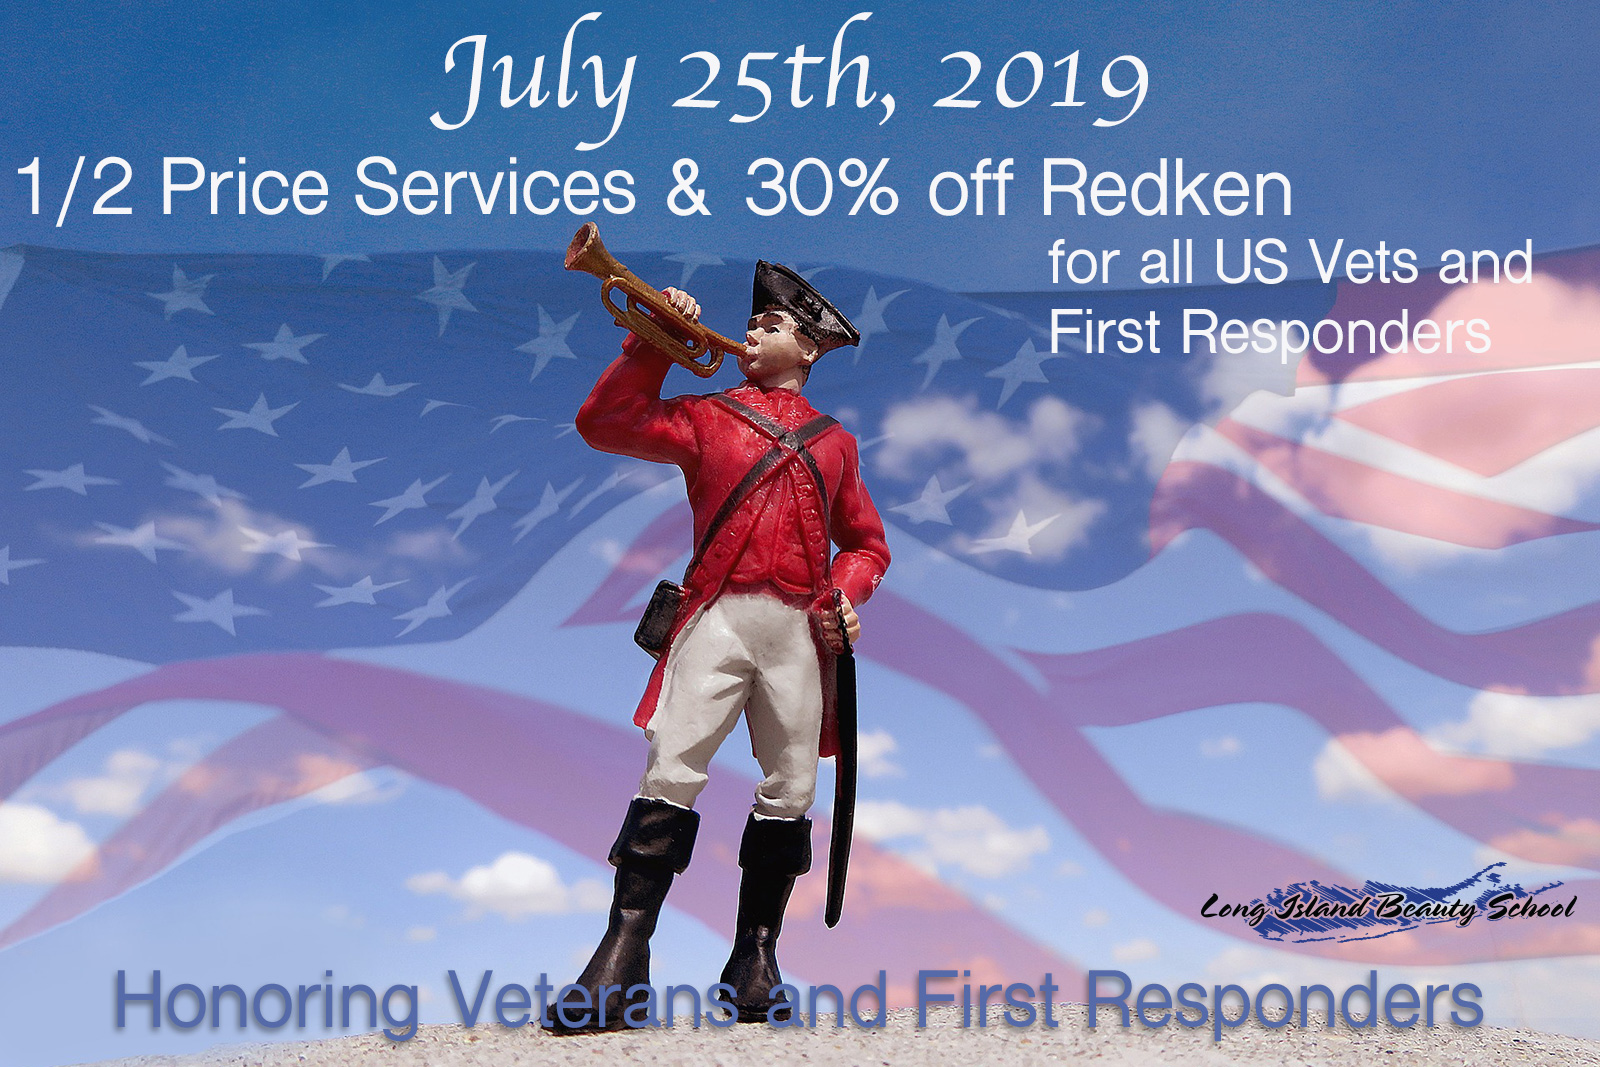 First Responders July 25th Salon Special